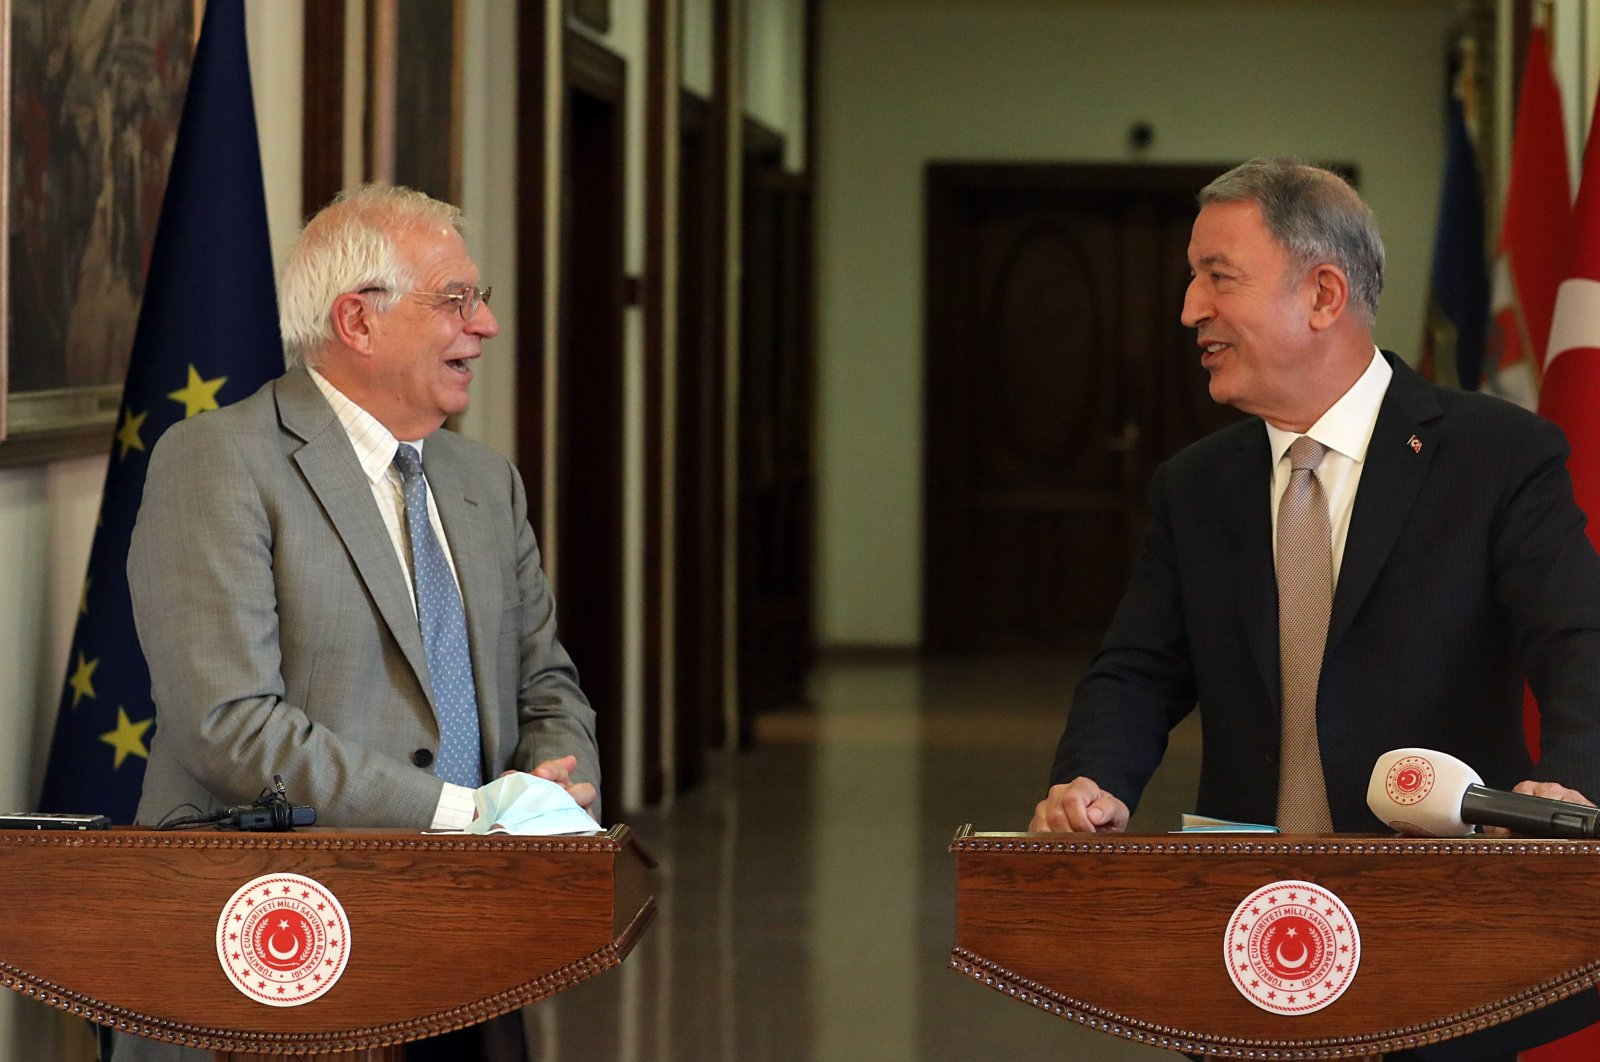 Defense Minister Hulusi Akar (Right) smiles during a news conference with EU foreign policy chief Josep Borrell in Ankara on Monday, July 6, 2020 (IHA Photo)